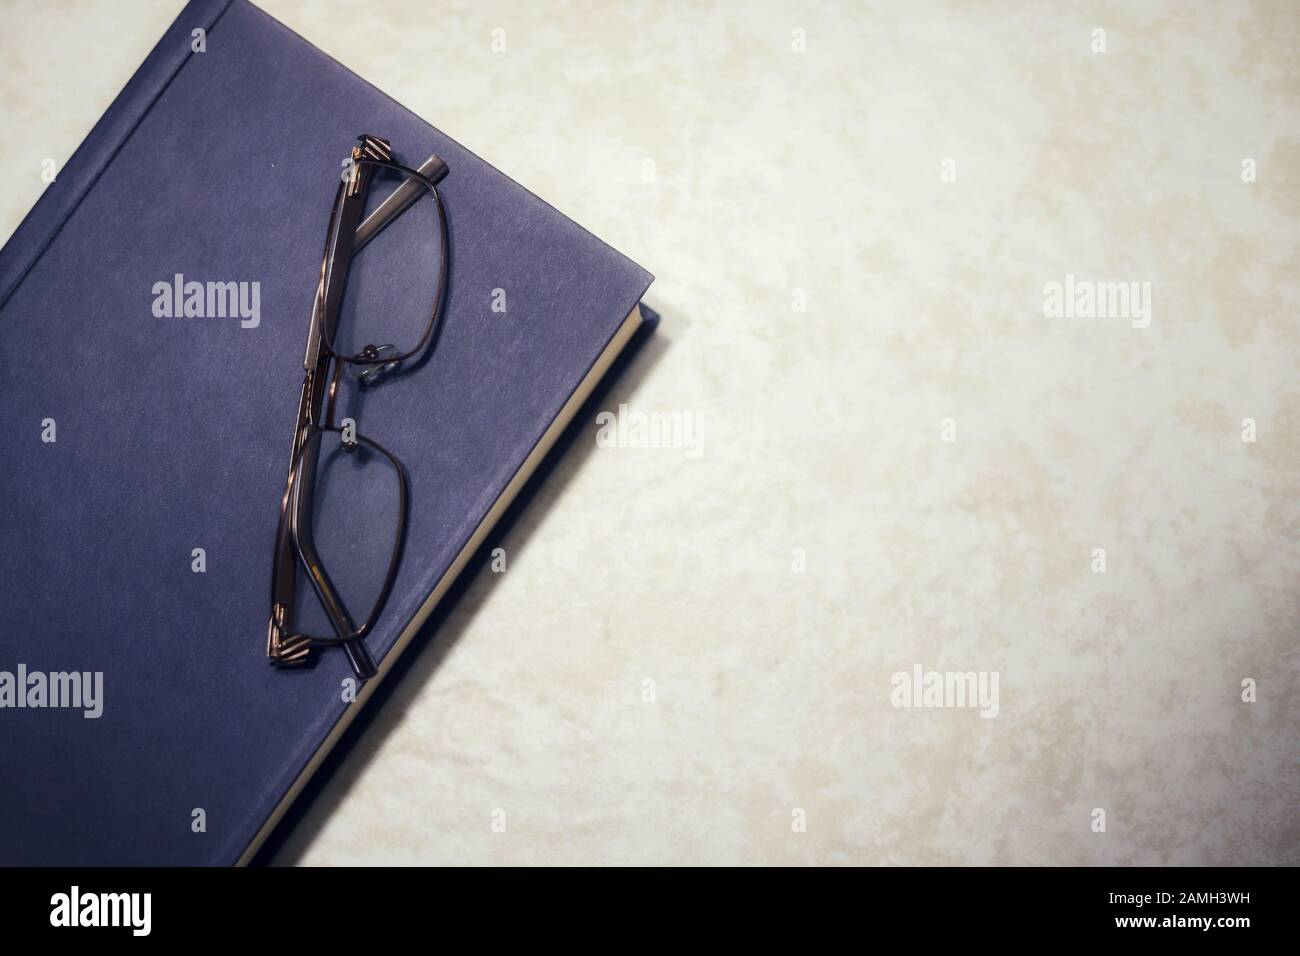 A blue hardcover book with a pair of reading glasses on top with copy space Stock Photo